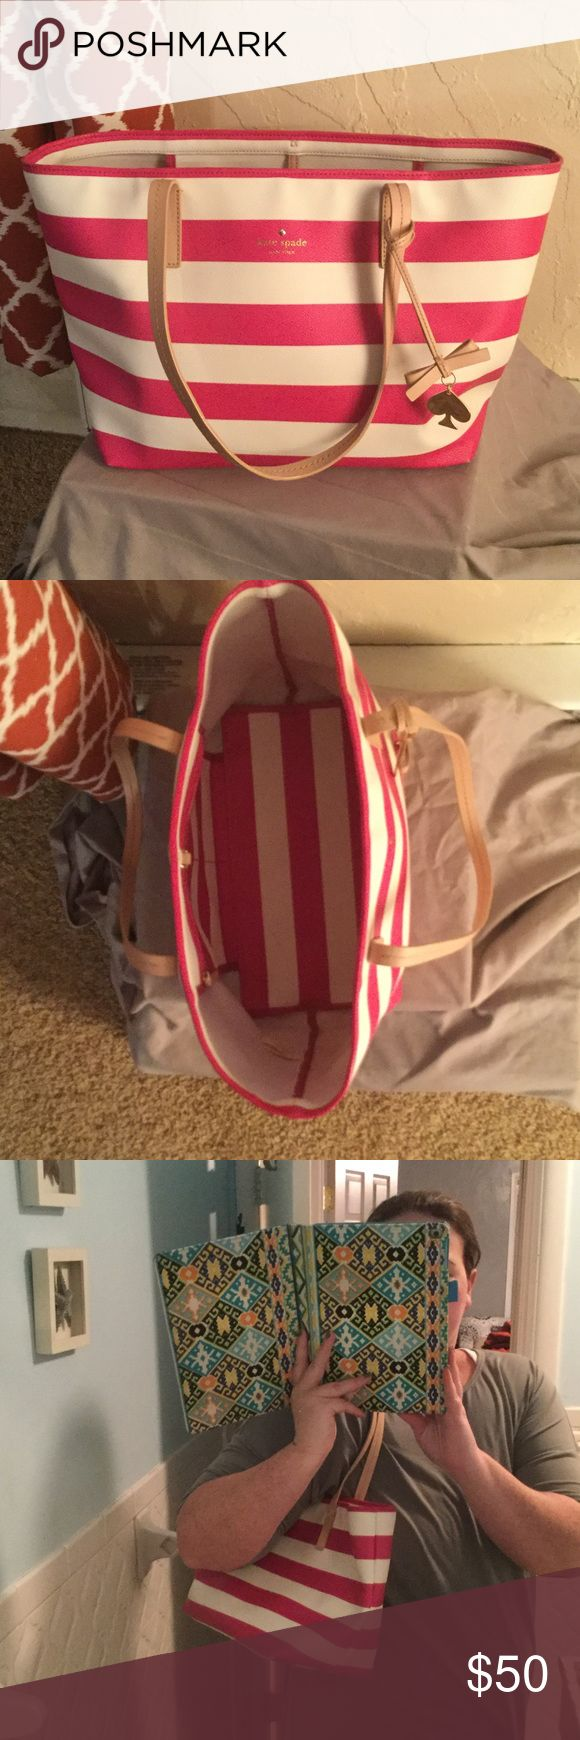 Pink/White Kate Spade Shoulder Bag Kate Spade Pink and White Striped Shoulder Bag. Used but in great condition. Has some pen marks on the inside bottom. kate spade Bags Shoulder Bags